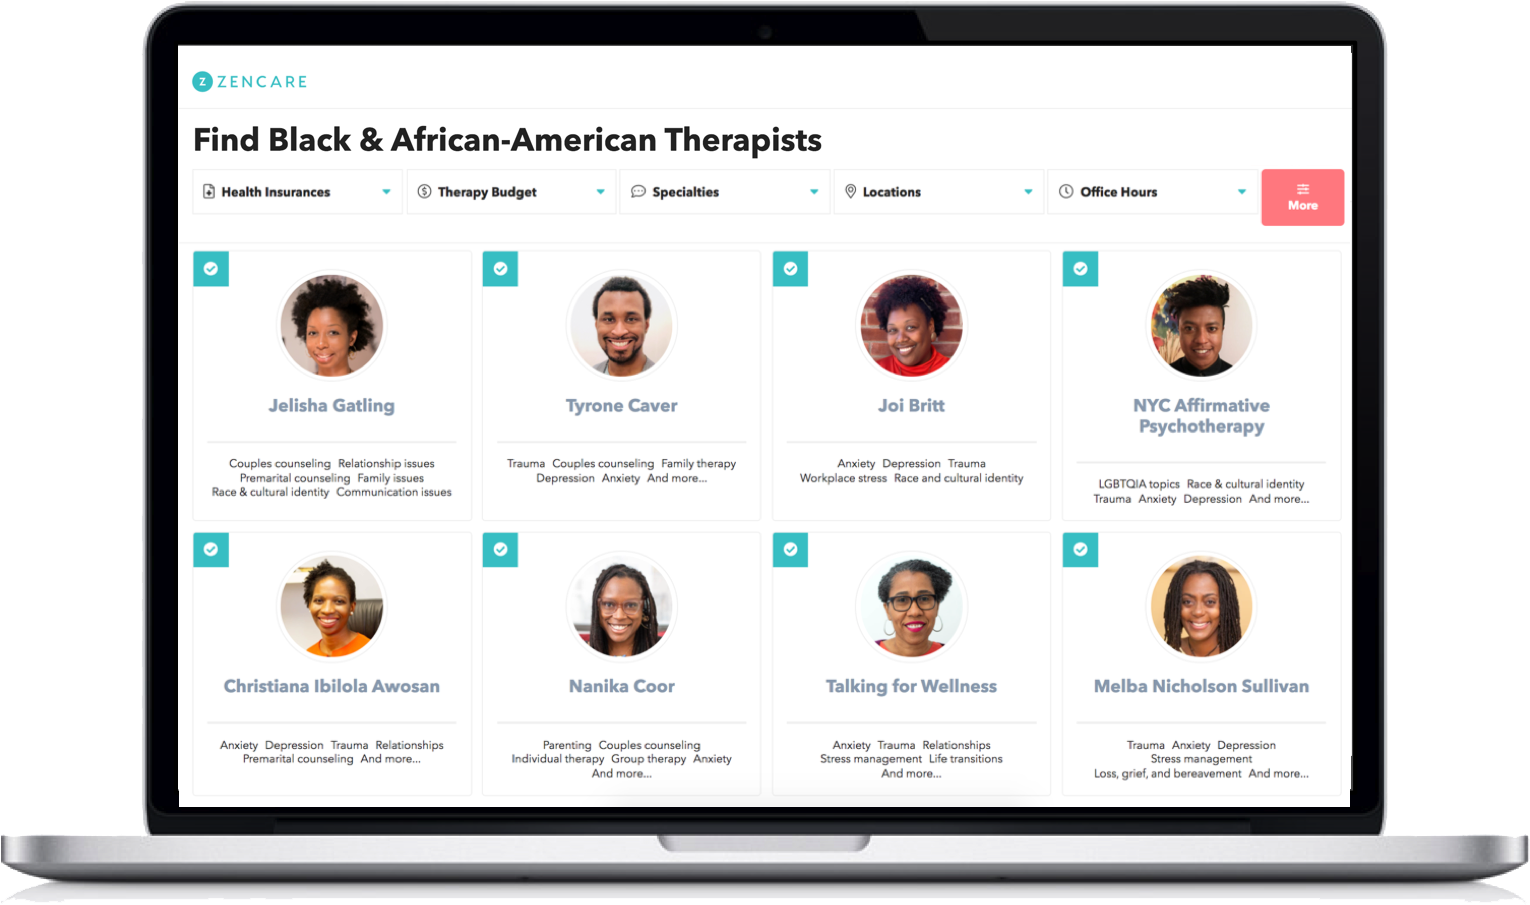 Black & African-American therapists on the Zencare website